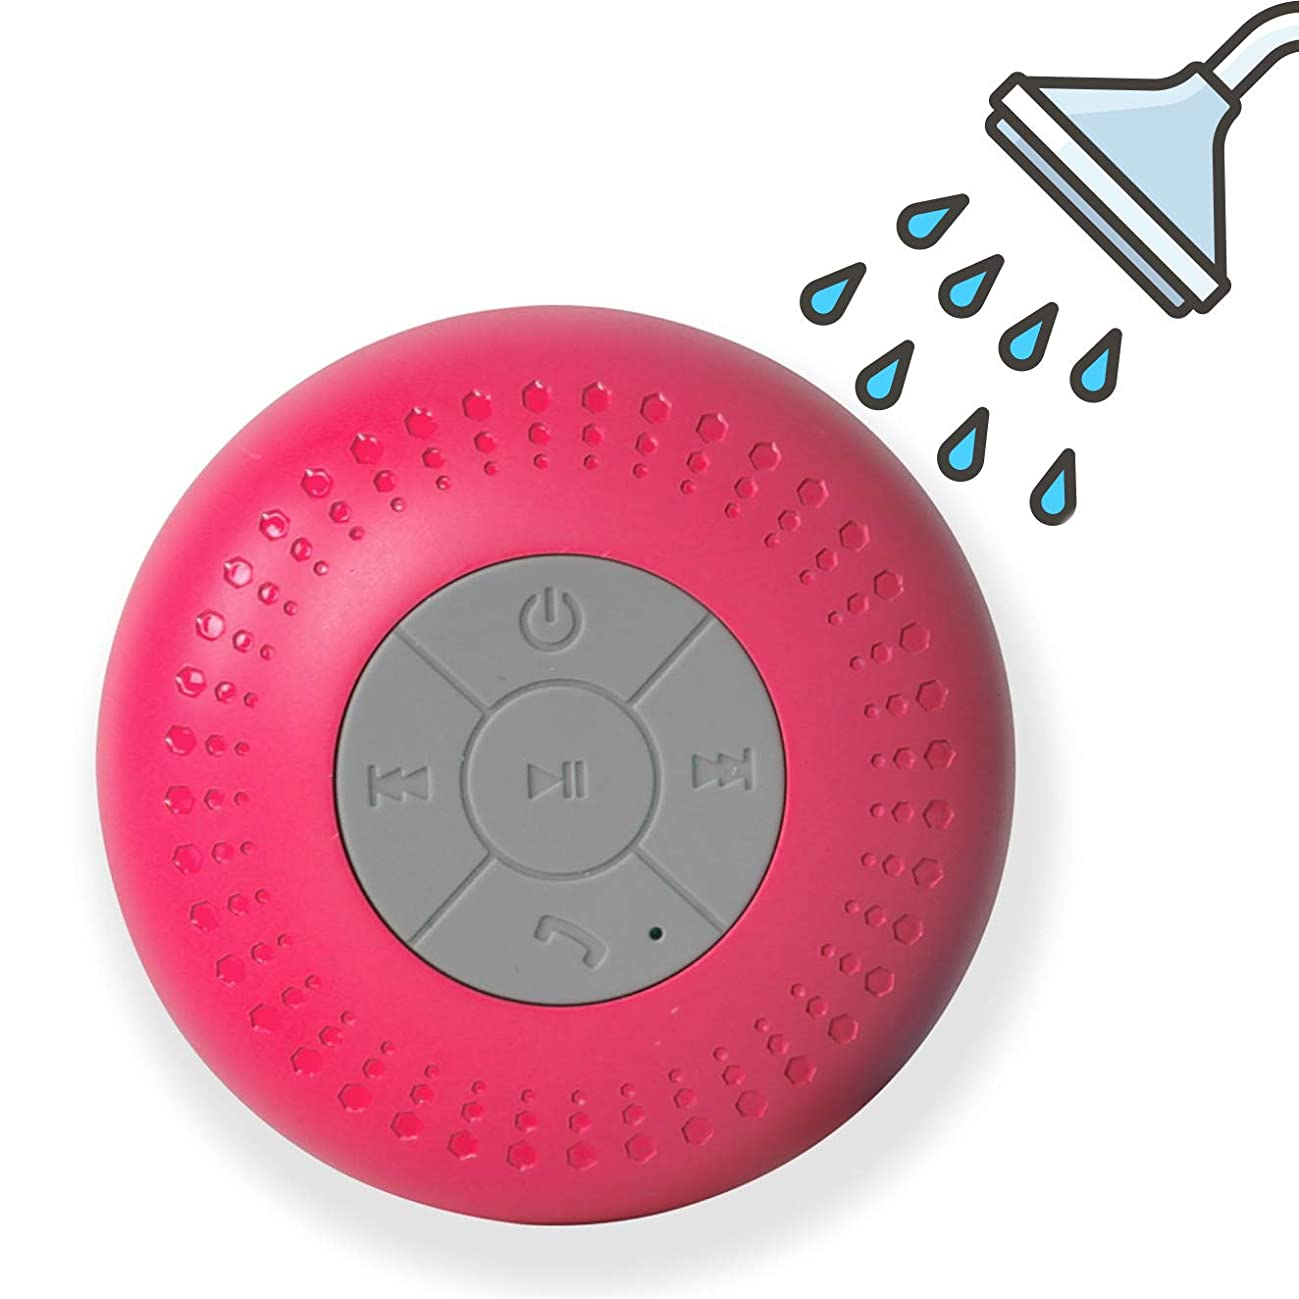 Mini Waterproof Shower Speaker with Suction Cup, Portable Wireless Bluetooth Speaker with Enhanced 3D Stereo Bass Sound for Shower, Home, Pool, Beach, Boating, Hiking (Pink)